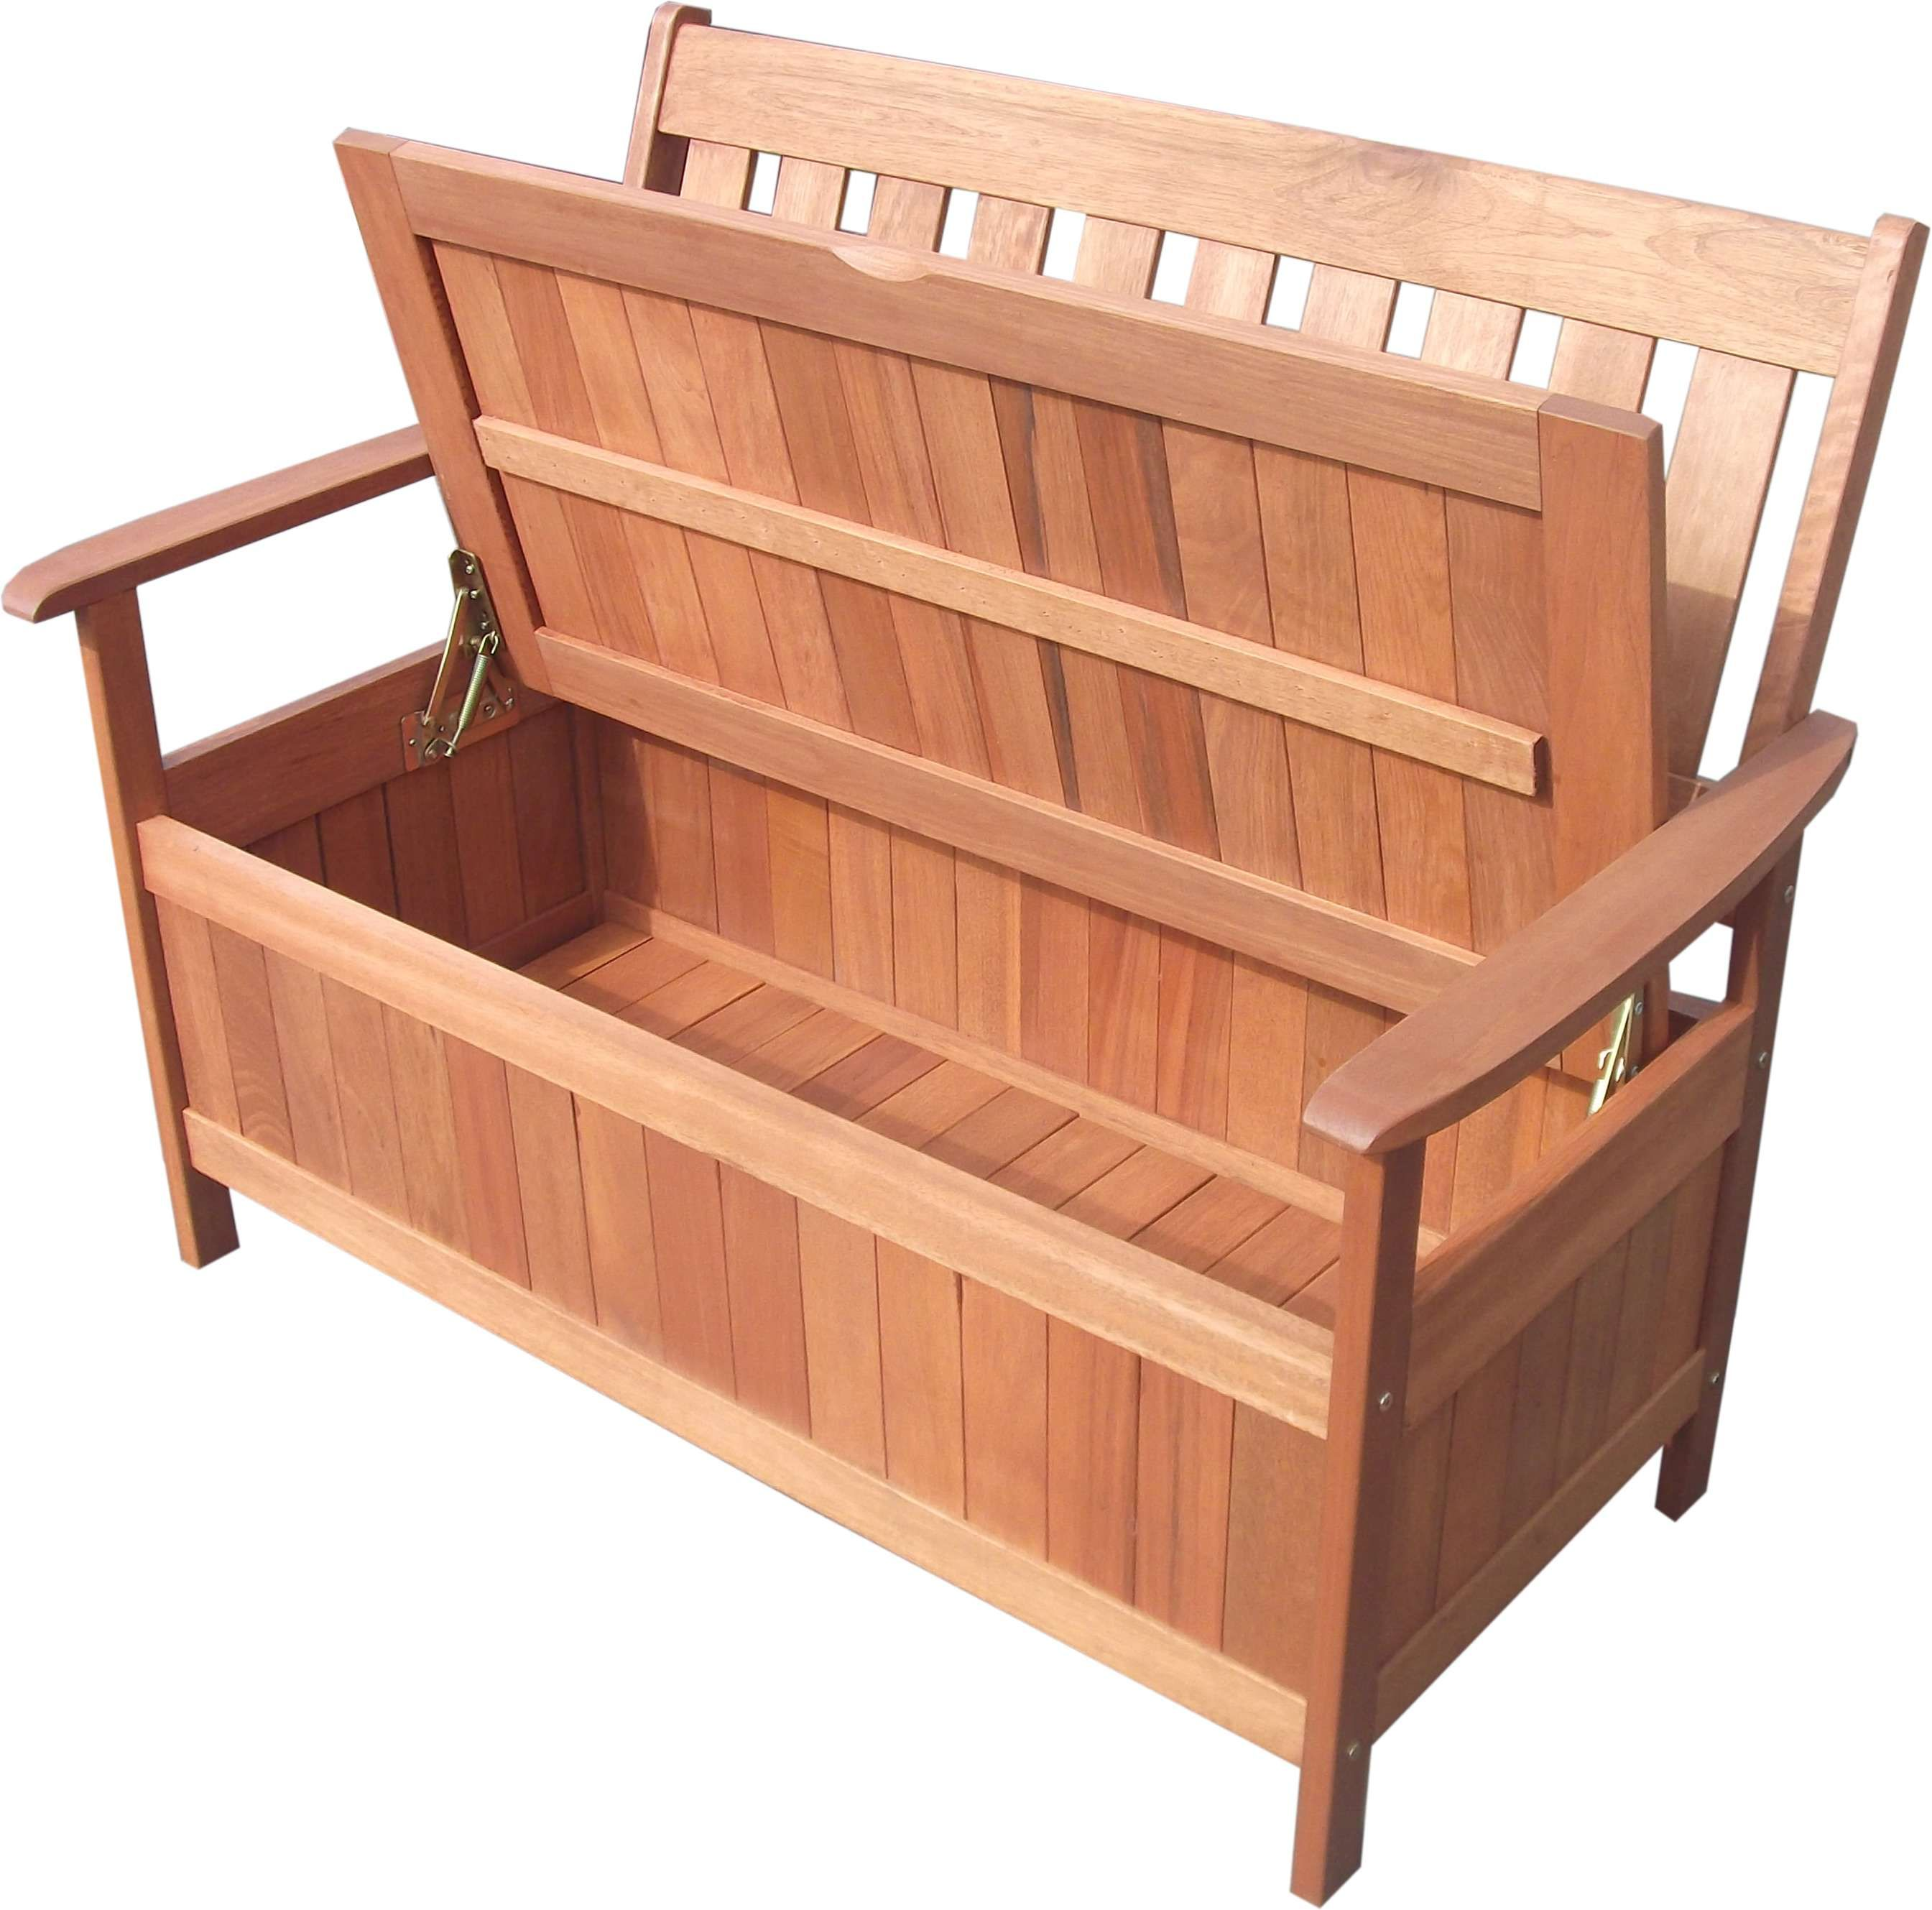 Bench Costco Patio Deck Box Planter Boxes Rubbermaid Chic From